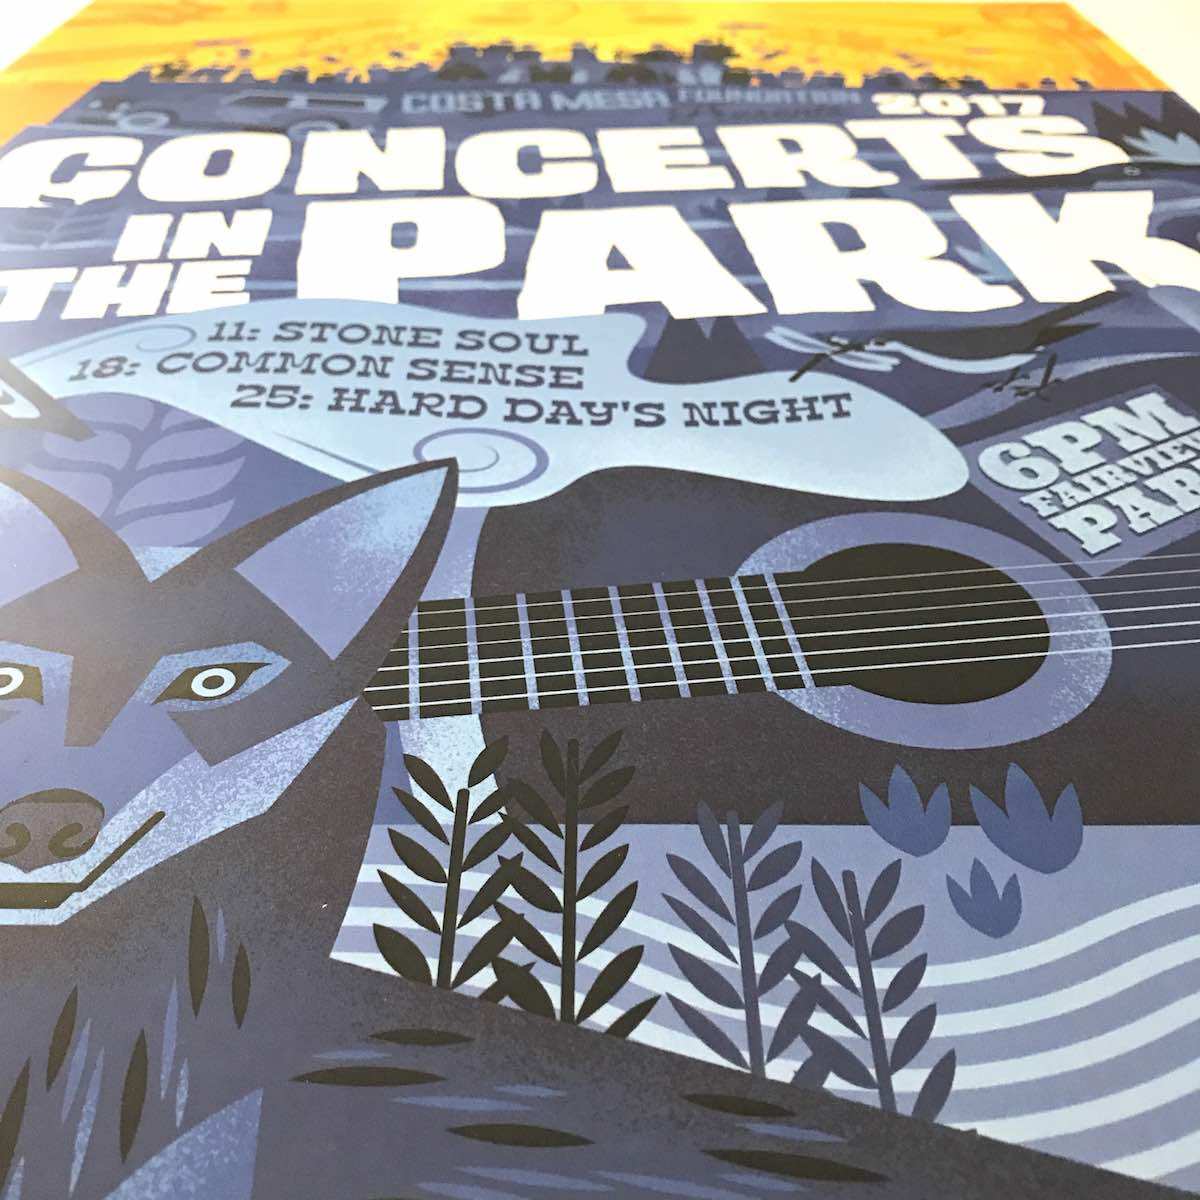 Design Is In The Details: Beautiful Layers, Shading and Use of Contrast Make the 2017 Costa Mesa Concerts In The Park Poster a Real Work of Art